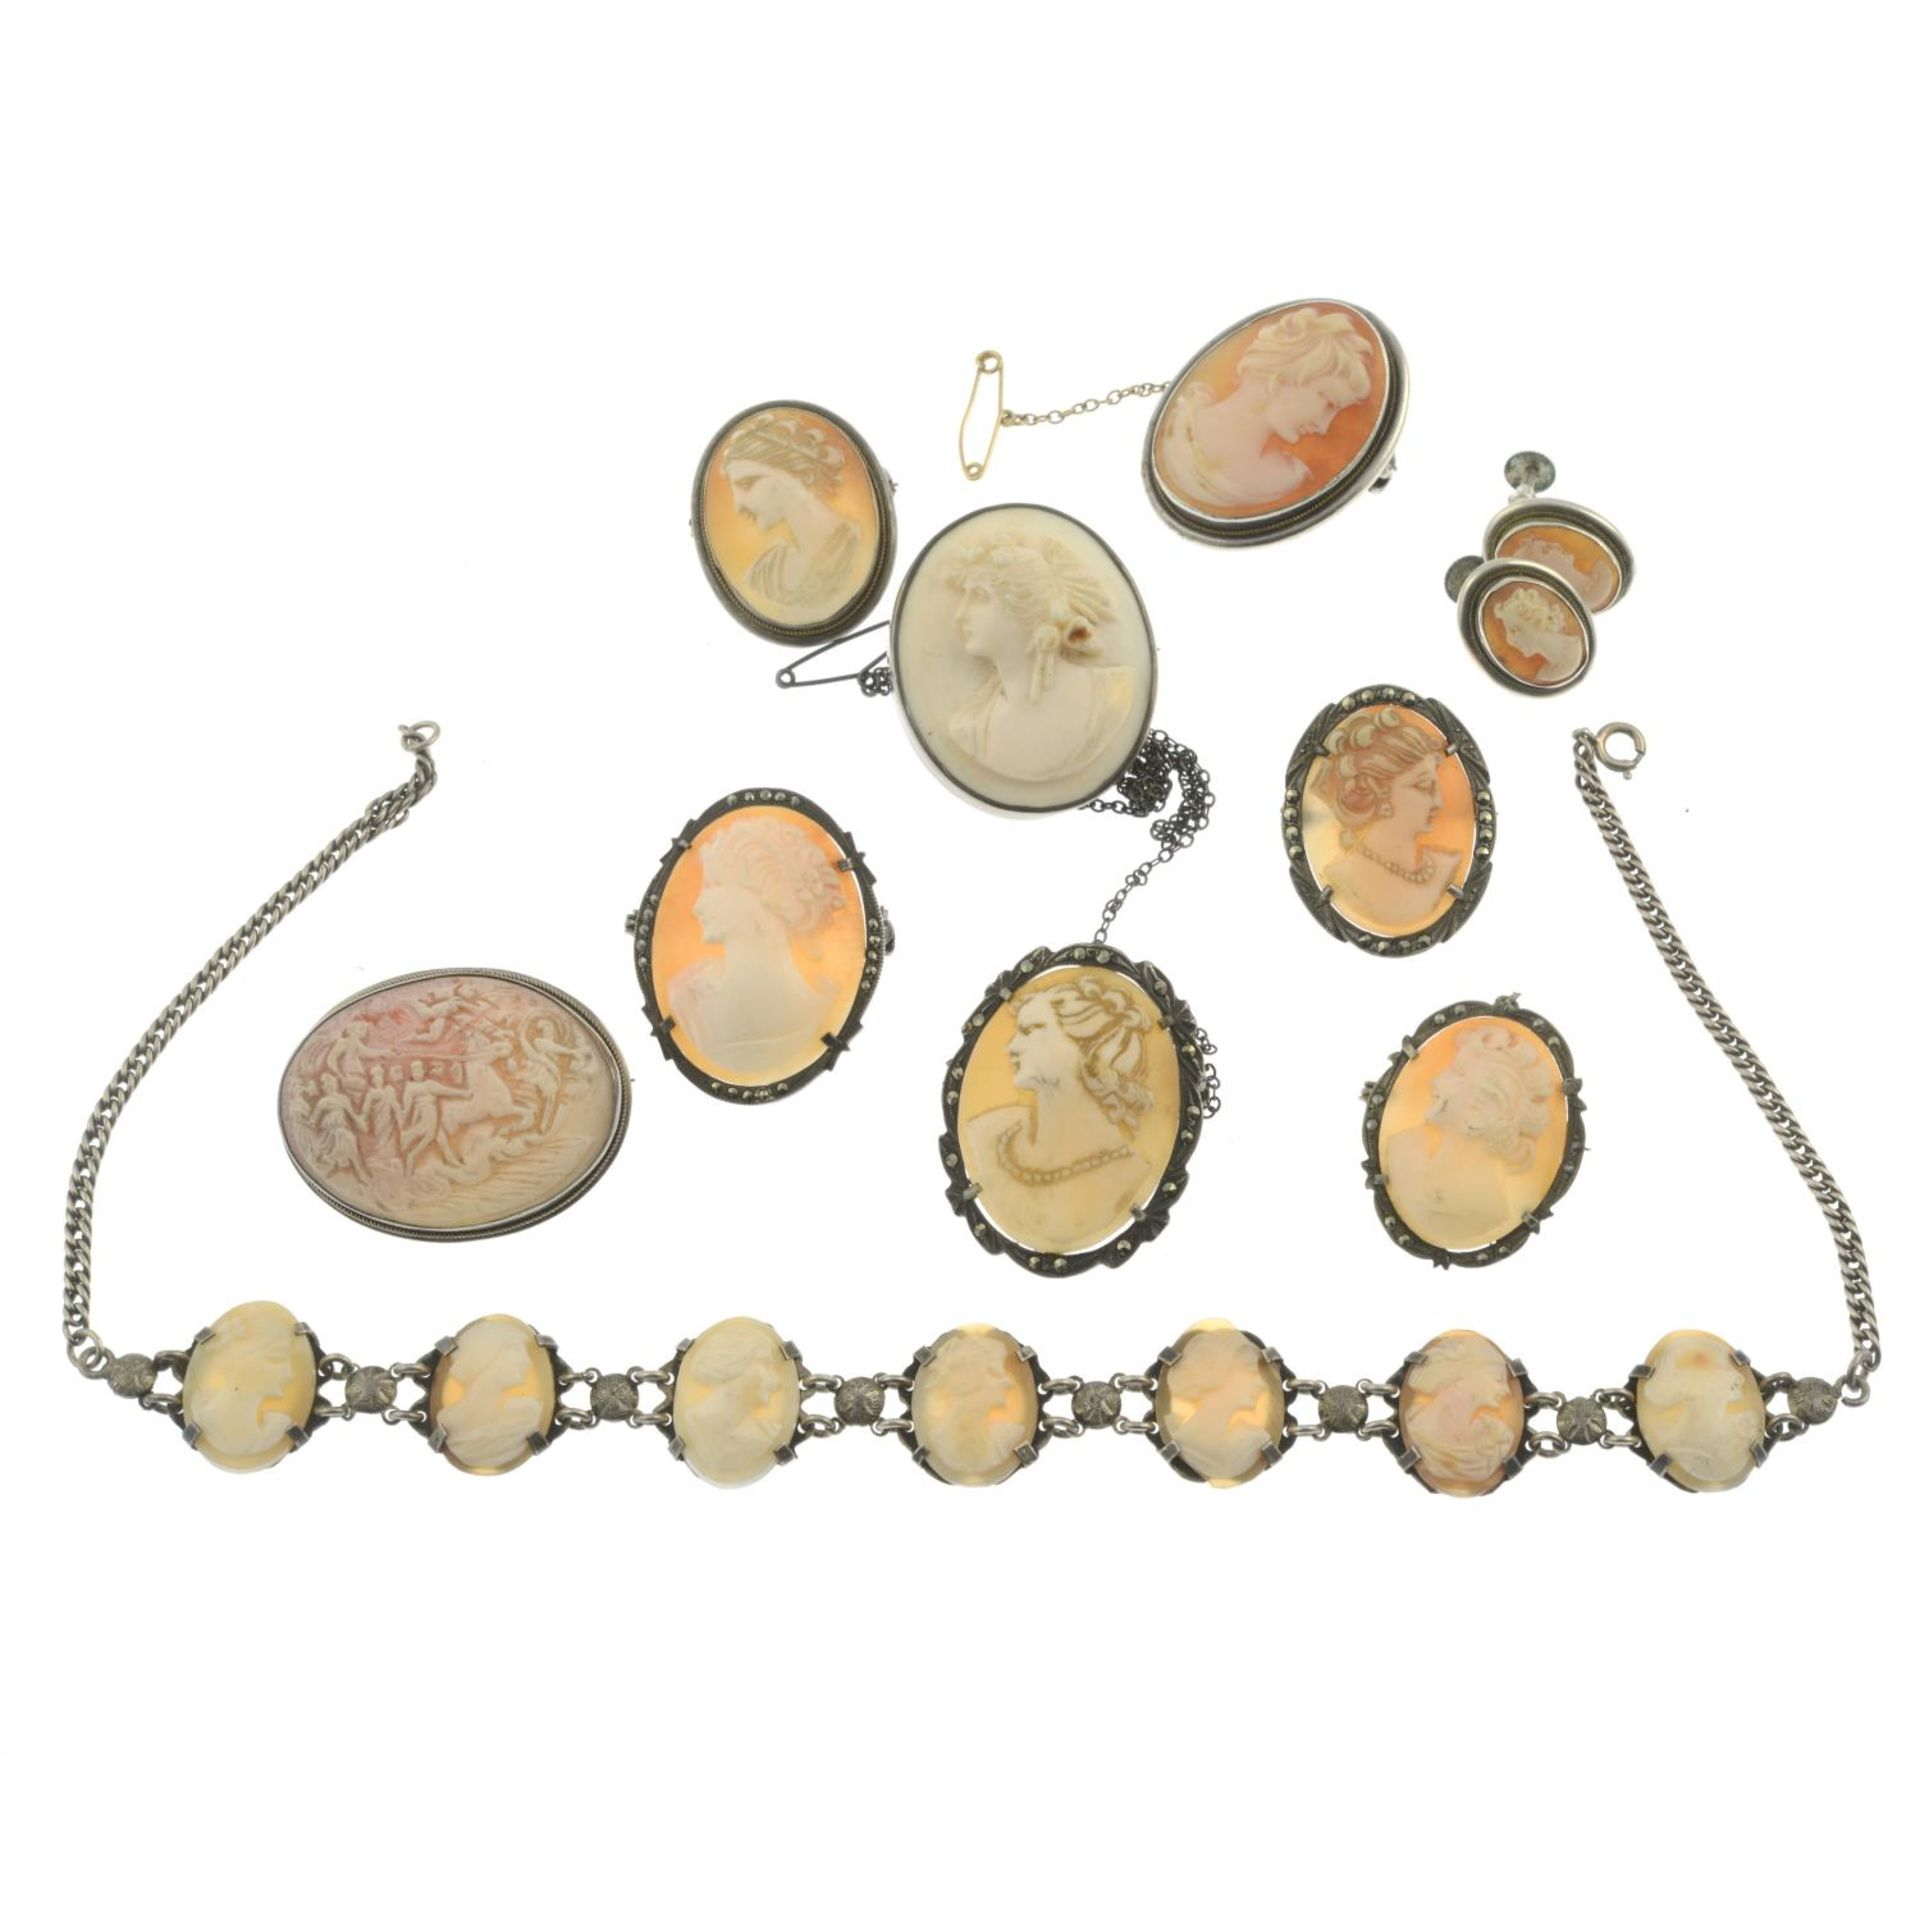 A selection of cameo jewellery, to include a silver cameo bracelet. - Image 2 of 2